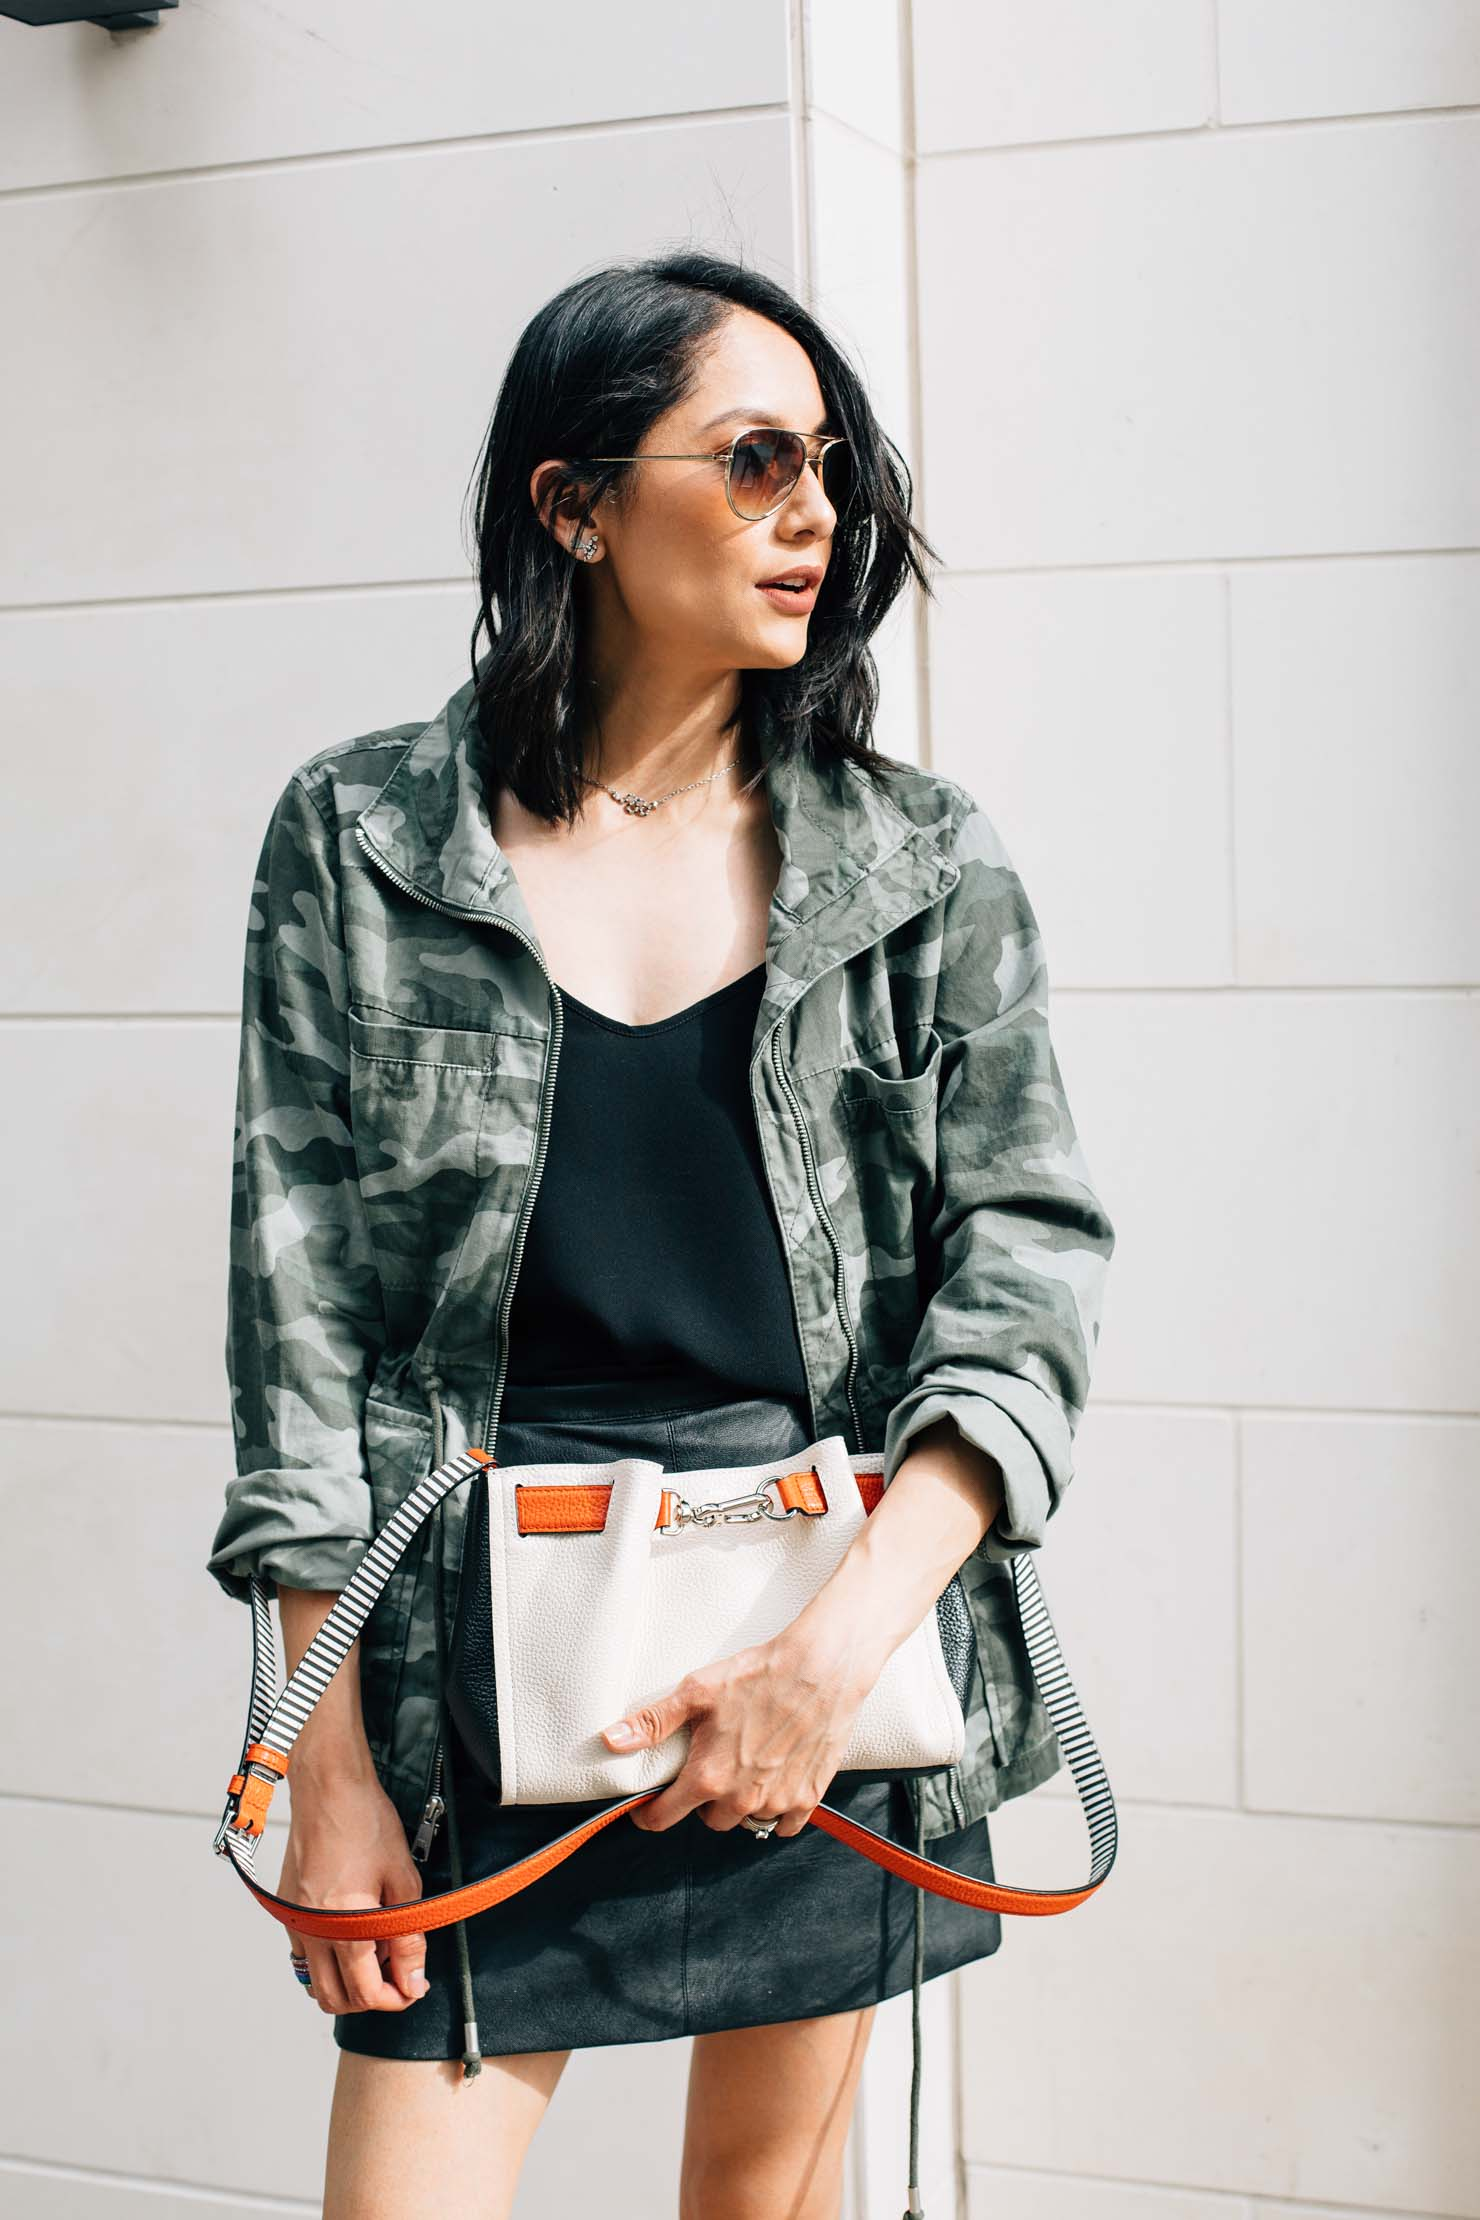 A camo jacket worn with a leather mini skirt by blogger Lilly Beltran